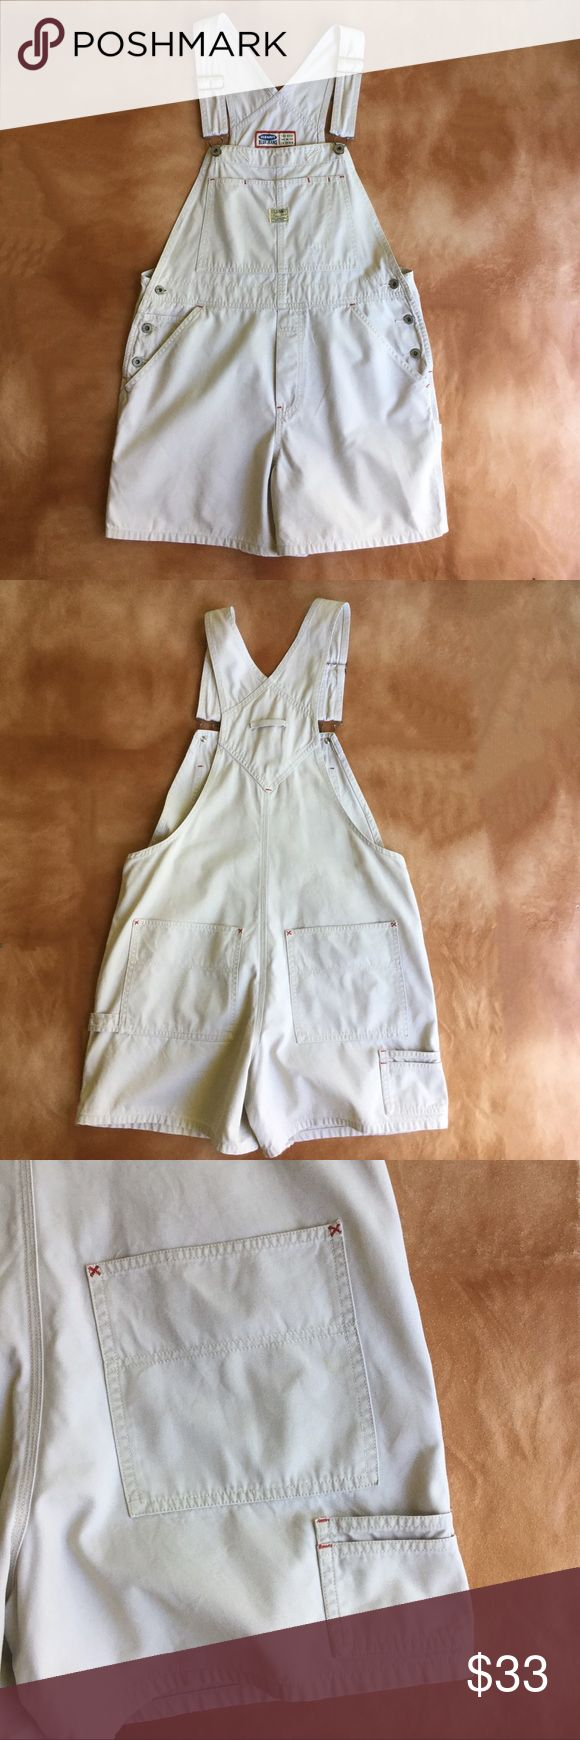 """Vintage 90's Old Navy Overalls Vintage 90's Old Navy overalls.  Size M"""" Light khaki with red stitching. These are a nice roomy cut. Please note the label in the last photo. Too hot of an iron was used, and the label has melted a little. This caused a small stain just above the label. Not really noticeable when wearing. Hips measured flat 20 in., inseam 5 in. Old Navy Jeans Overalls"""